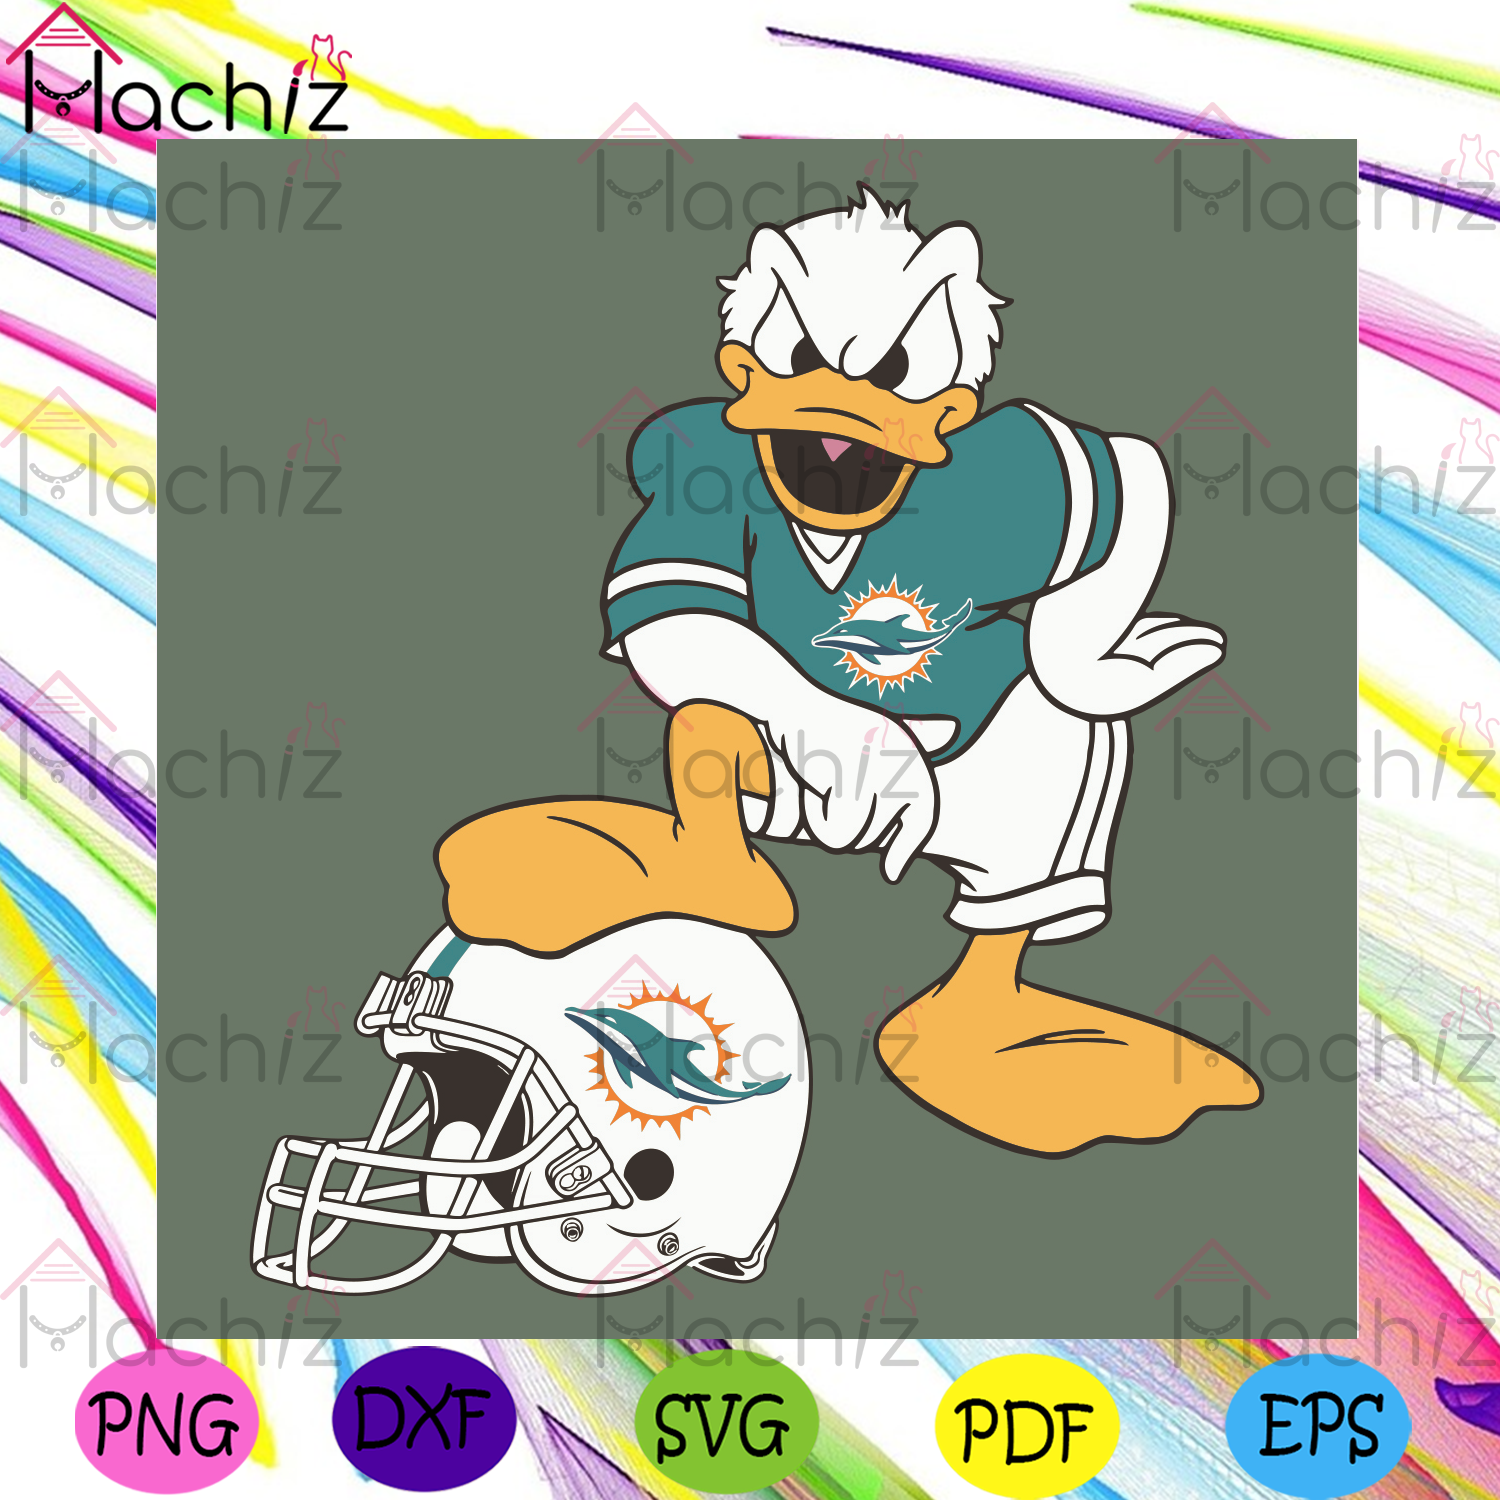 Donald Duck Miami Dolphins Svg, Sport Svg, Miami Dolphins Football Team Svg, Miami Dolphins Svg, Miami Dolphins Fans Svg, Donald Duck Svg, Miami Dolphins Lovers Svg, Miami Dolphins Gifts Svg, Dolphins Donald Svg, NFL Svg